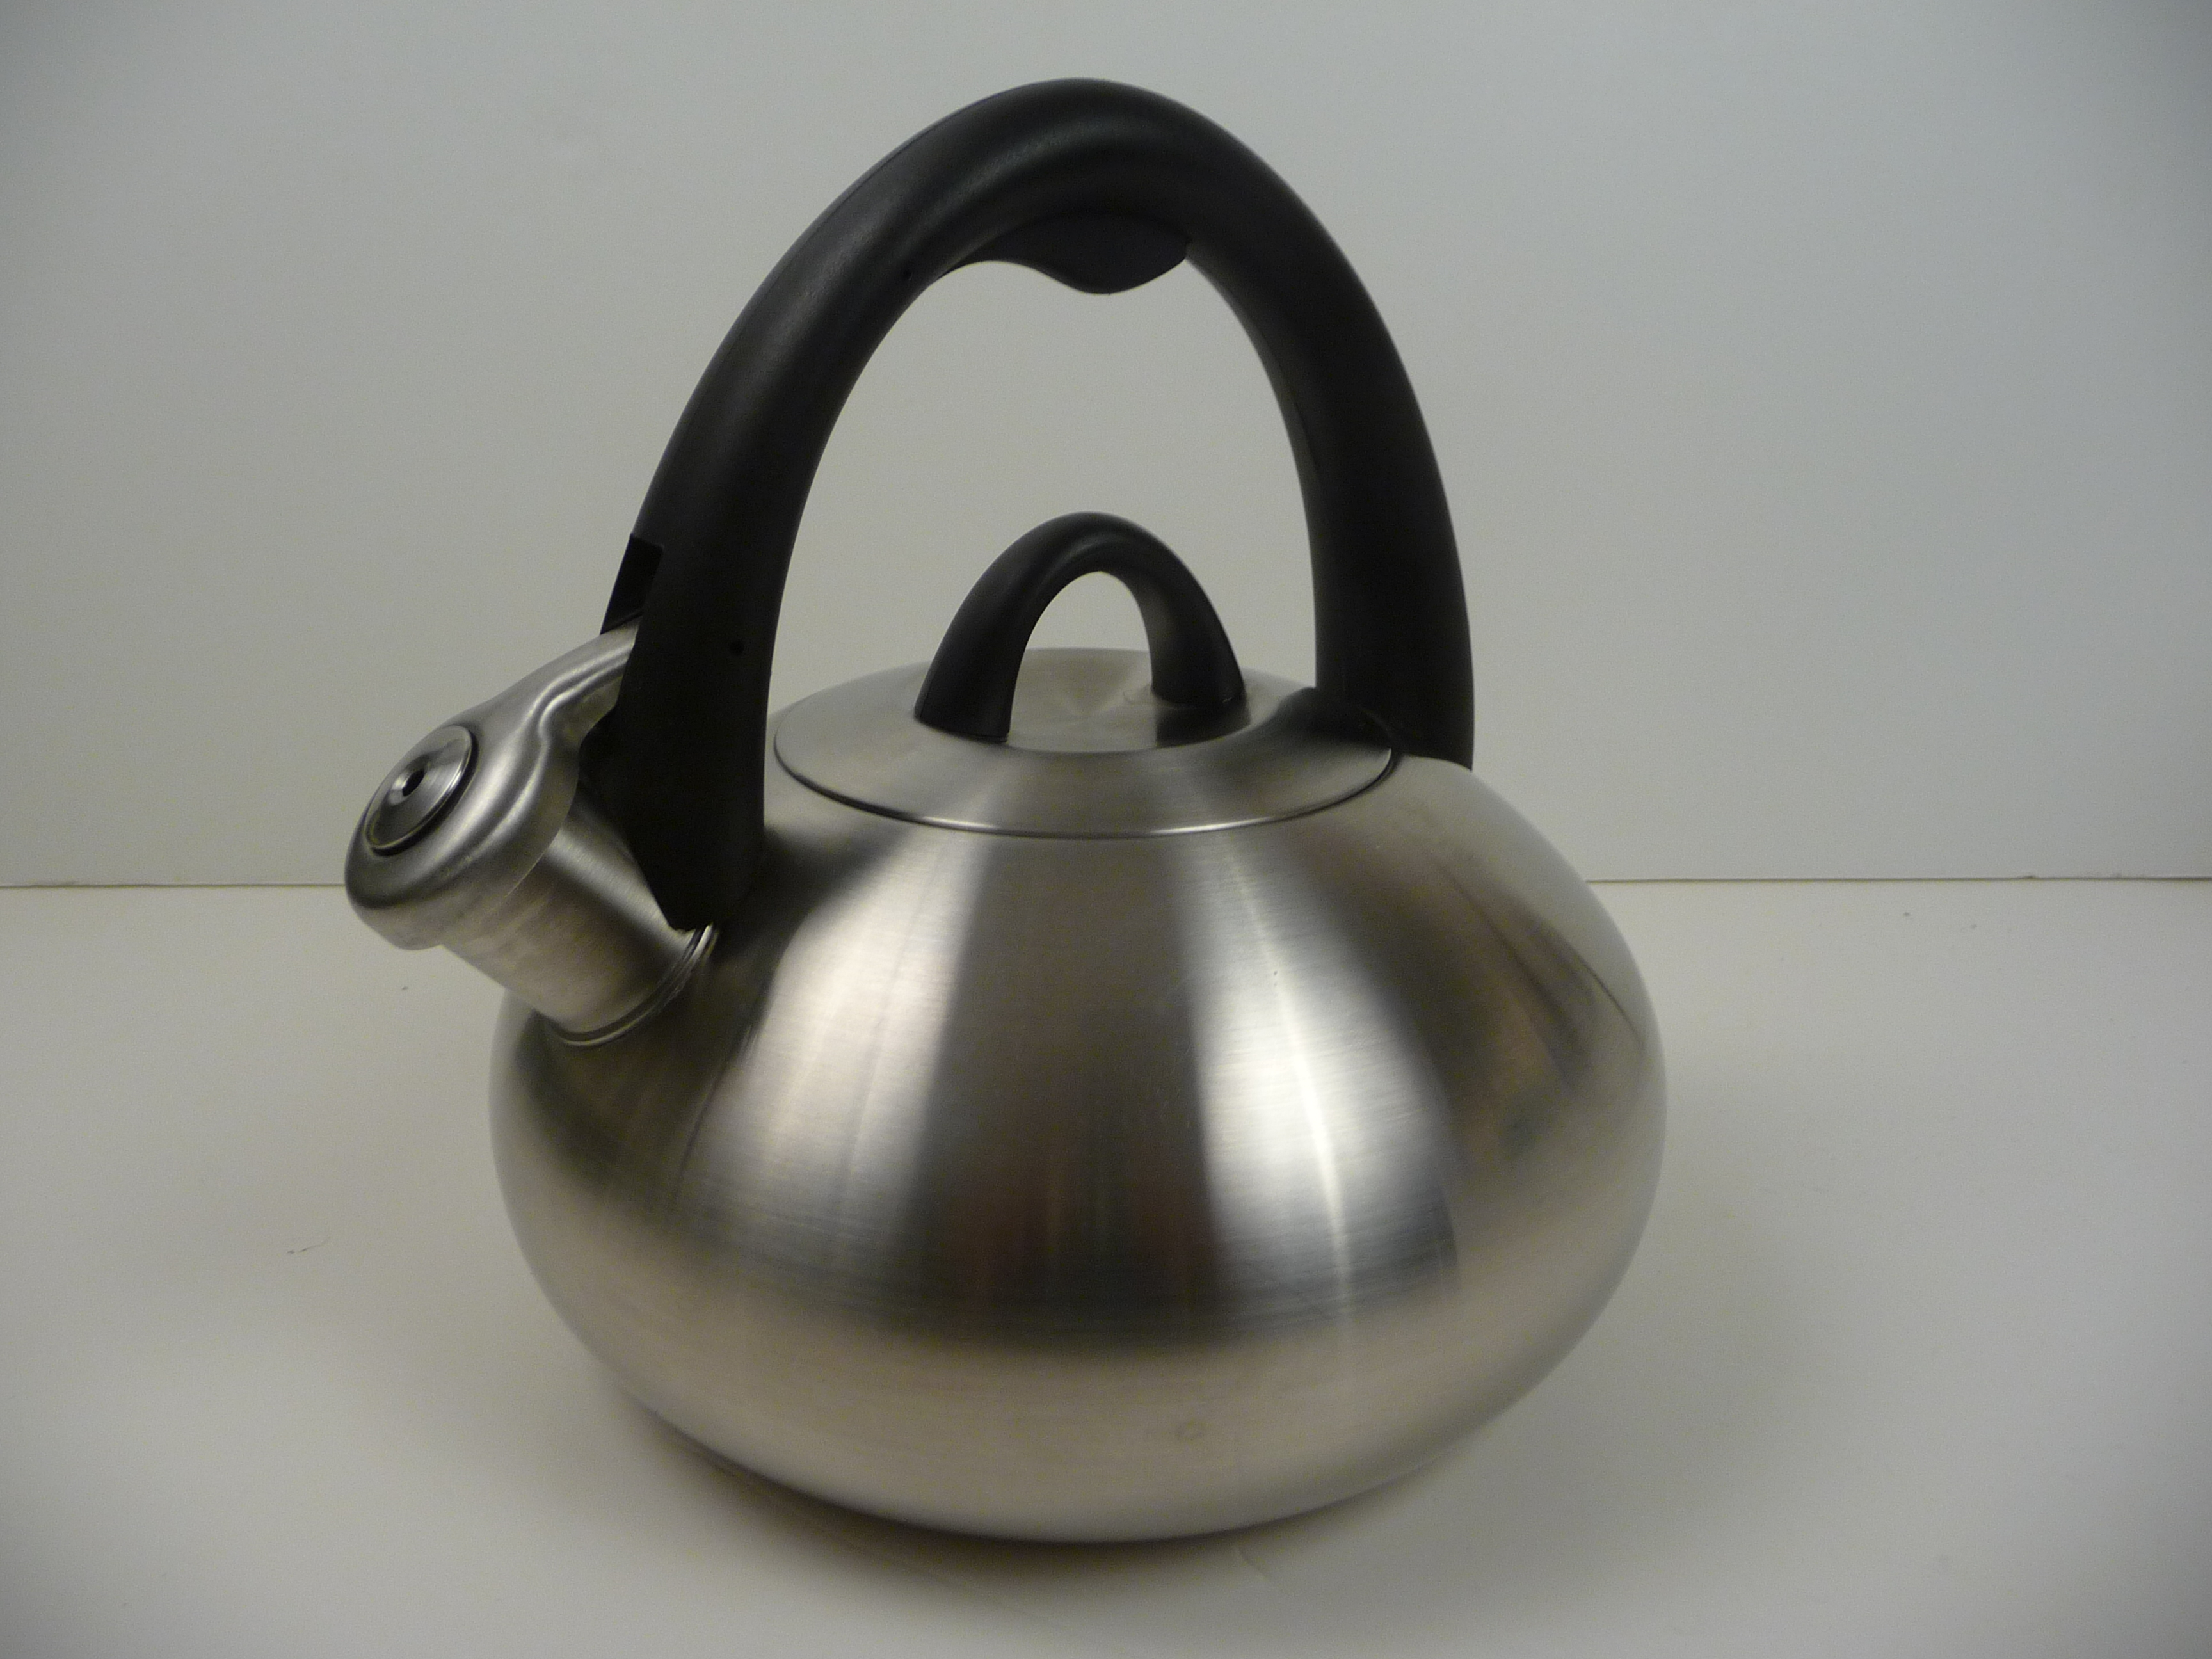 Best Teakettle – Calphalon – Stainless Steel Tea Kettle with Superior Human Design